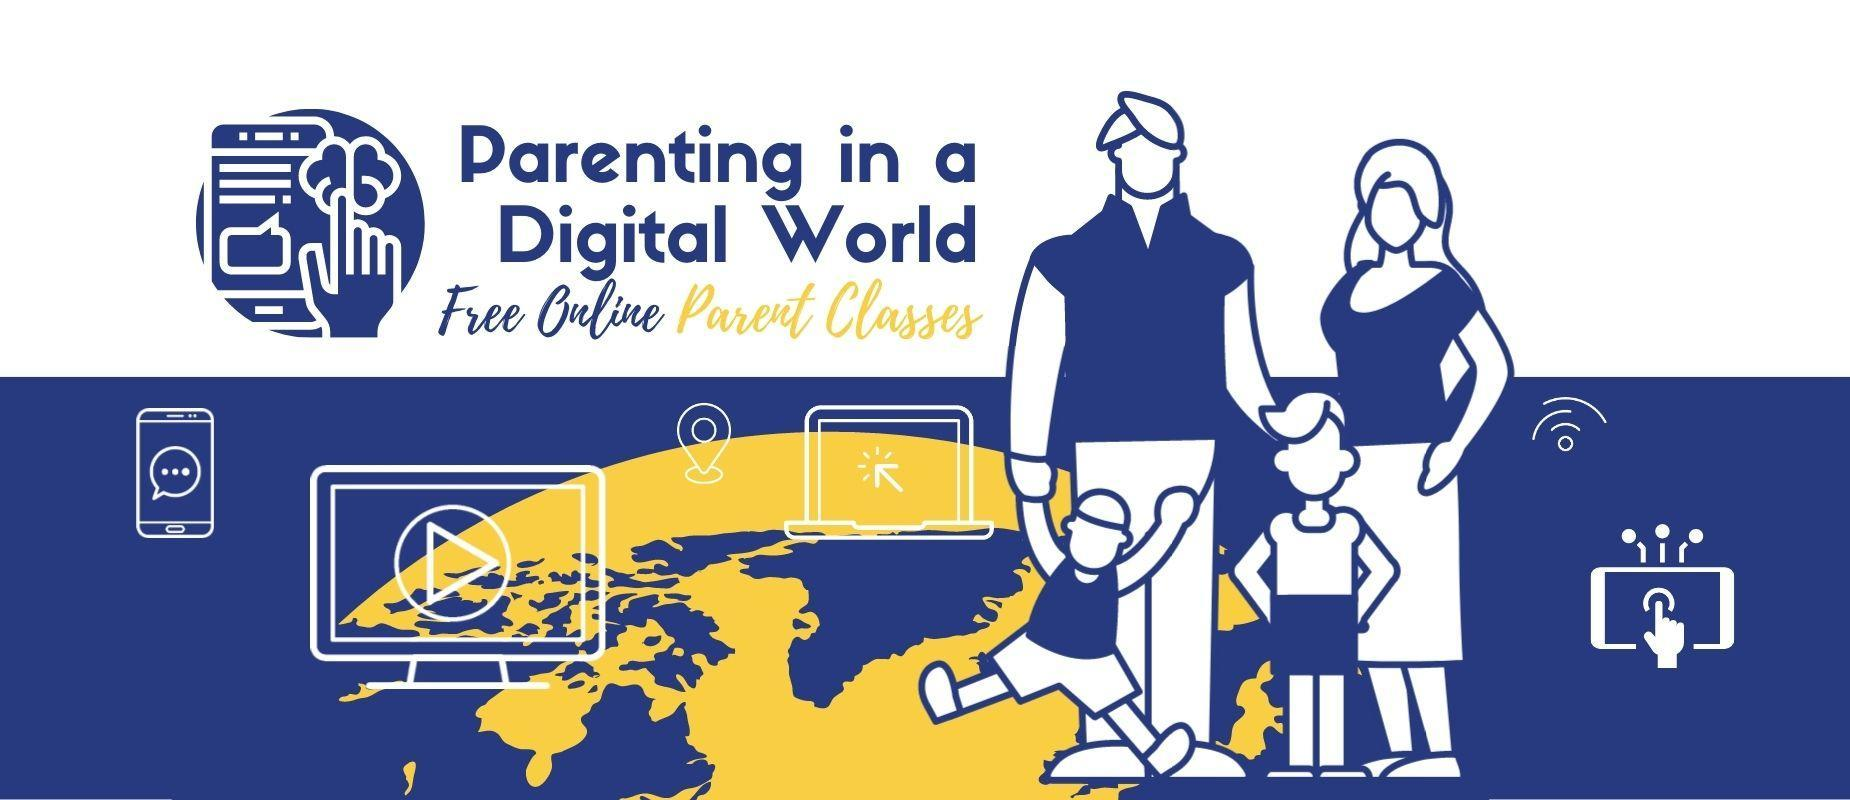 Parenting in a Digital World - Free Online Parent Classes